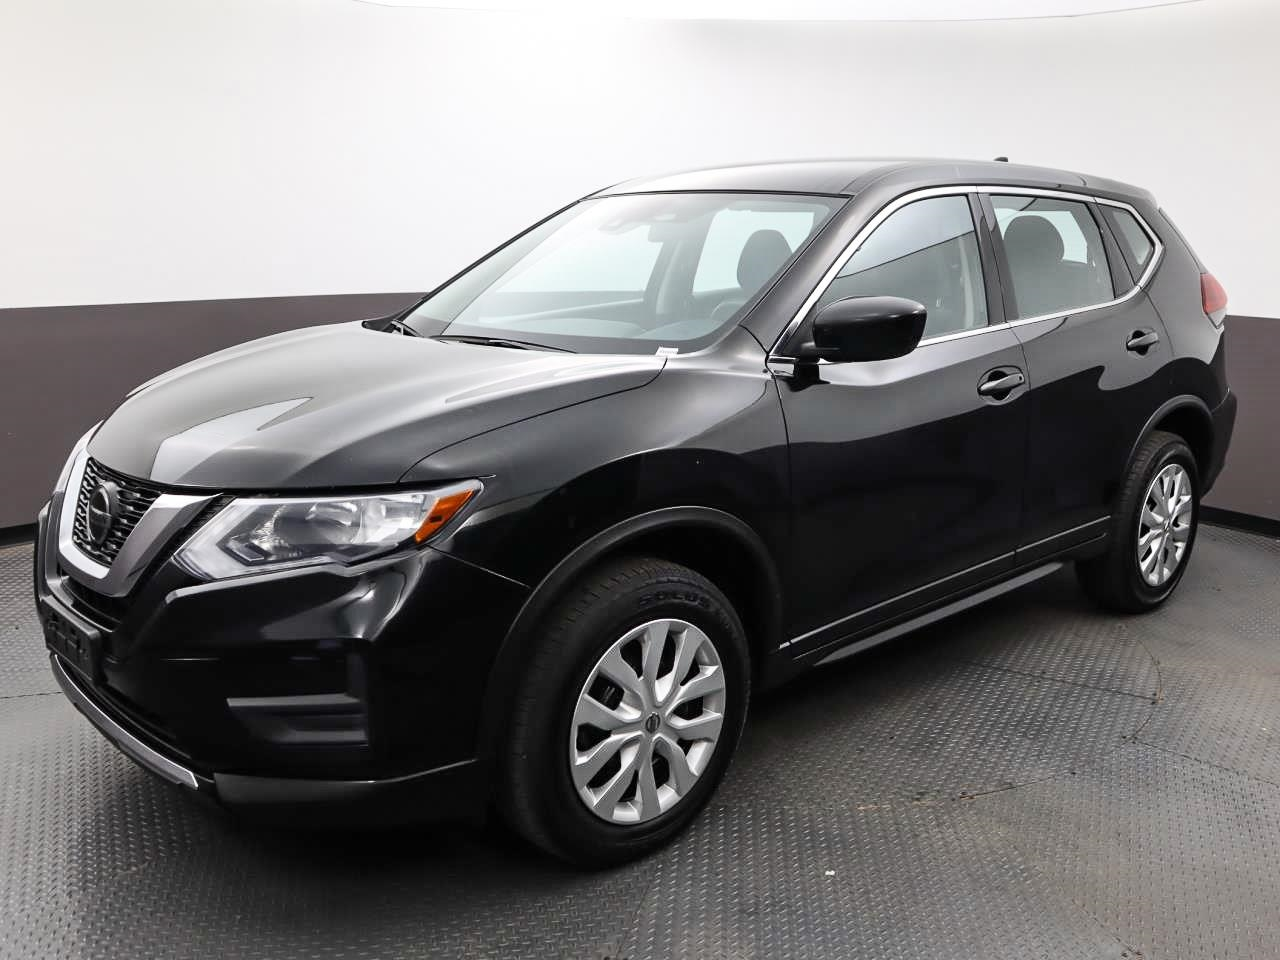 Used NISSAN ROGUE 2019 MIAMI S